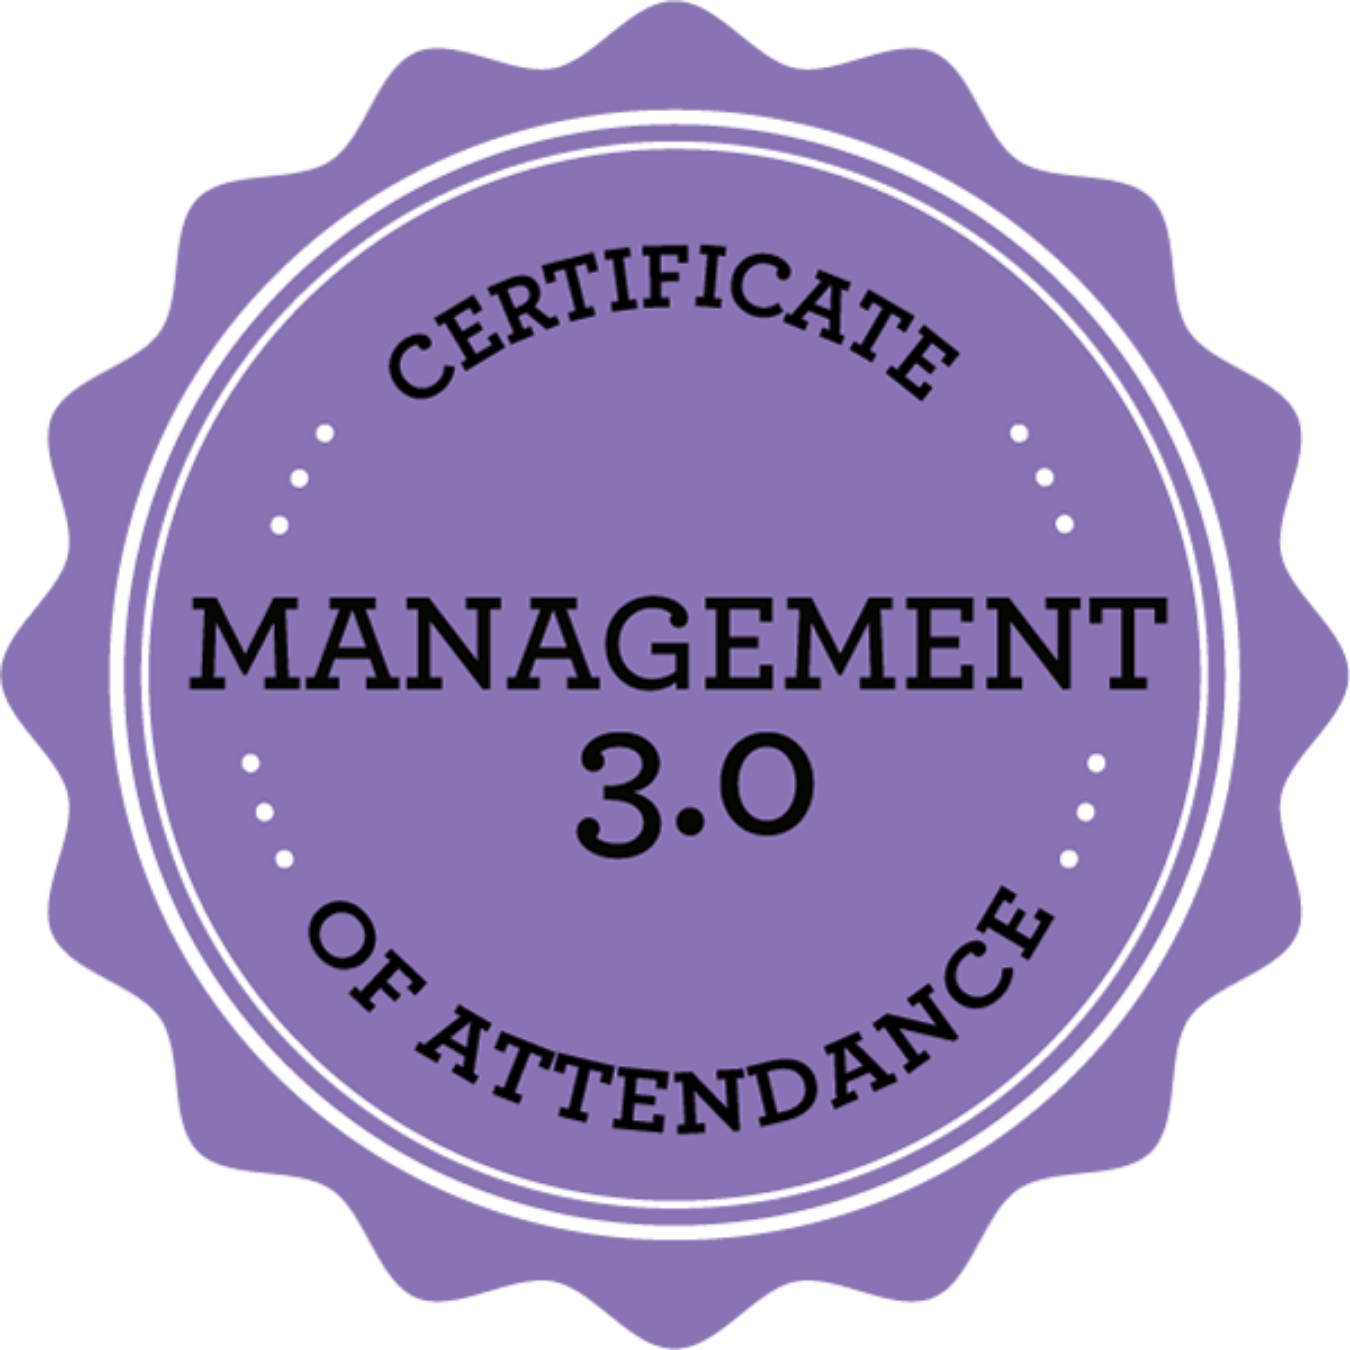 certificate manage 3.0.png